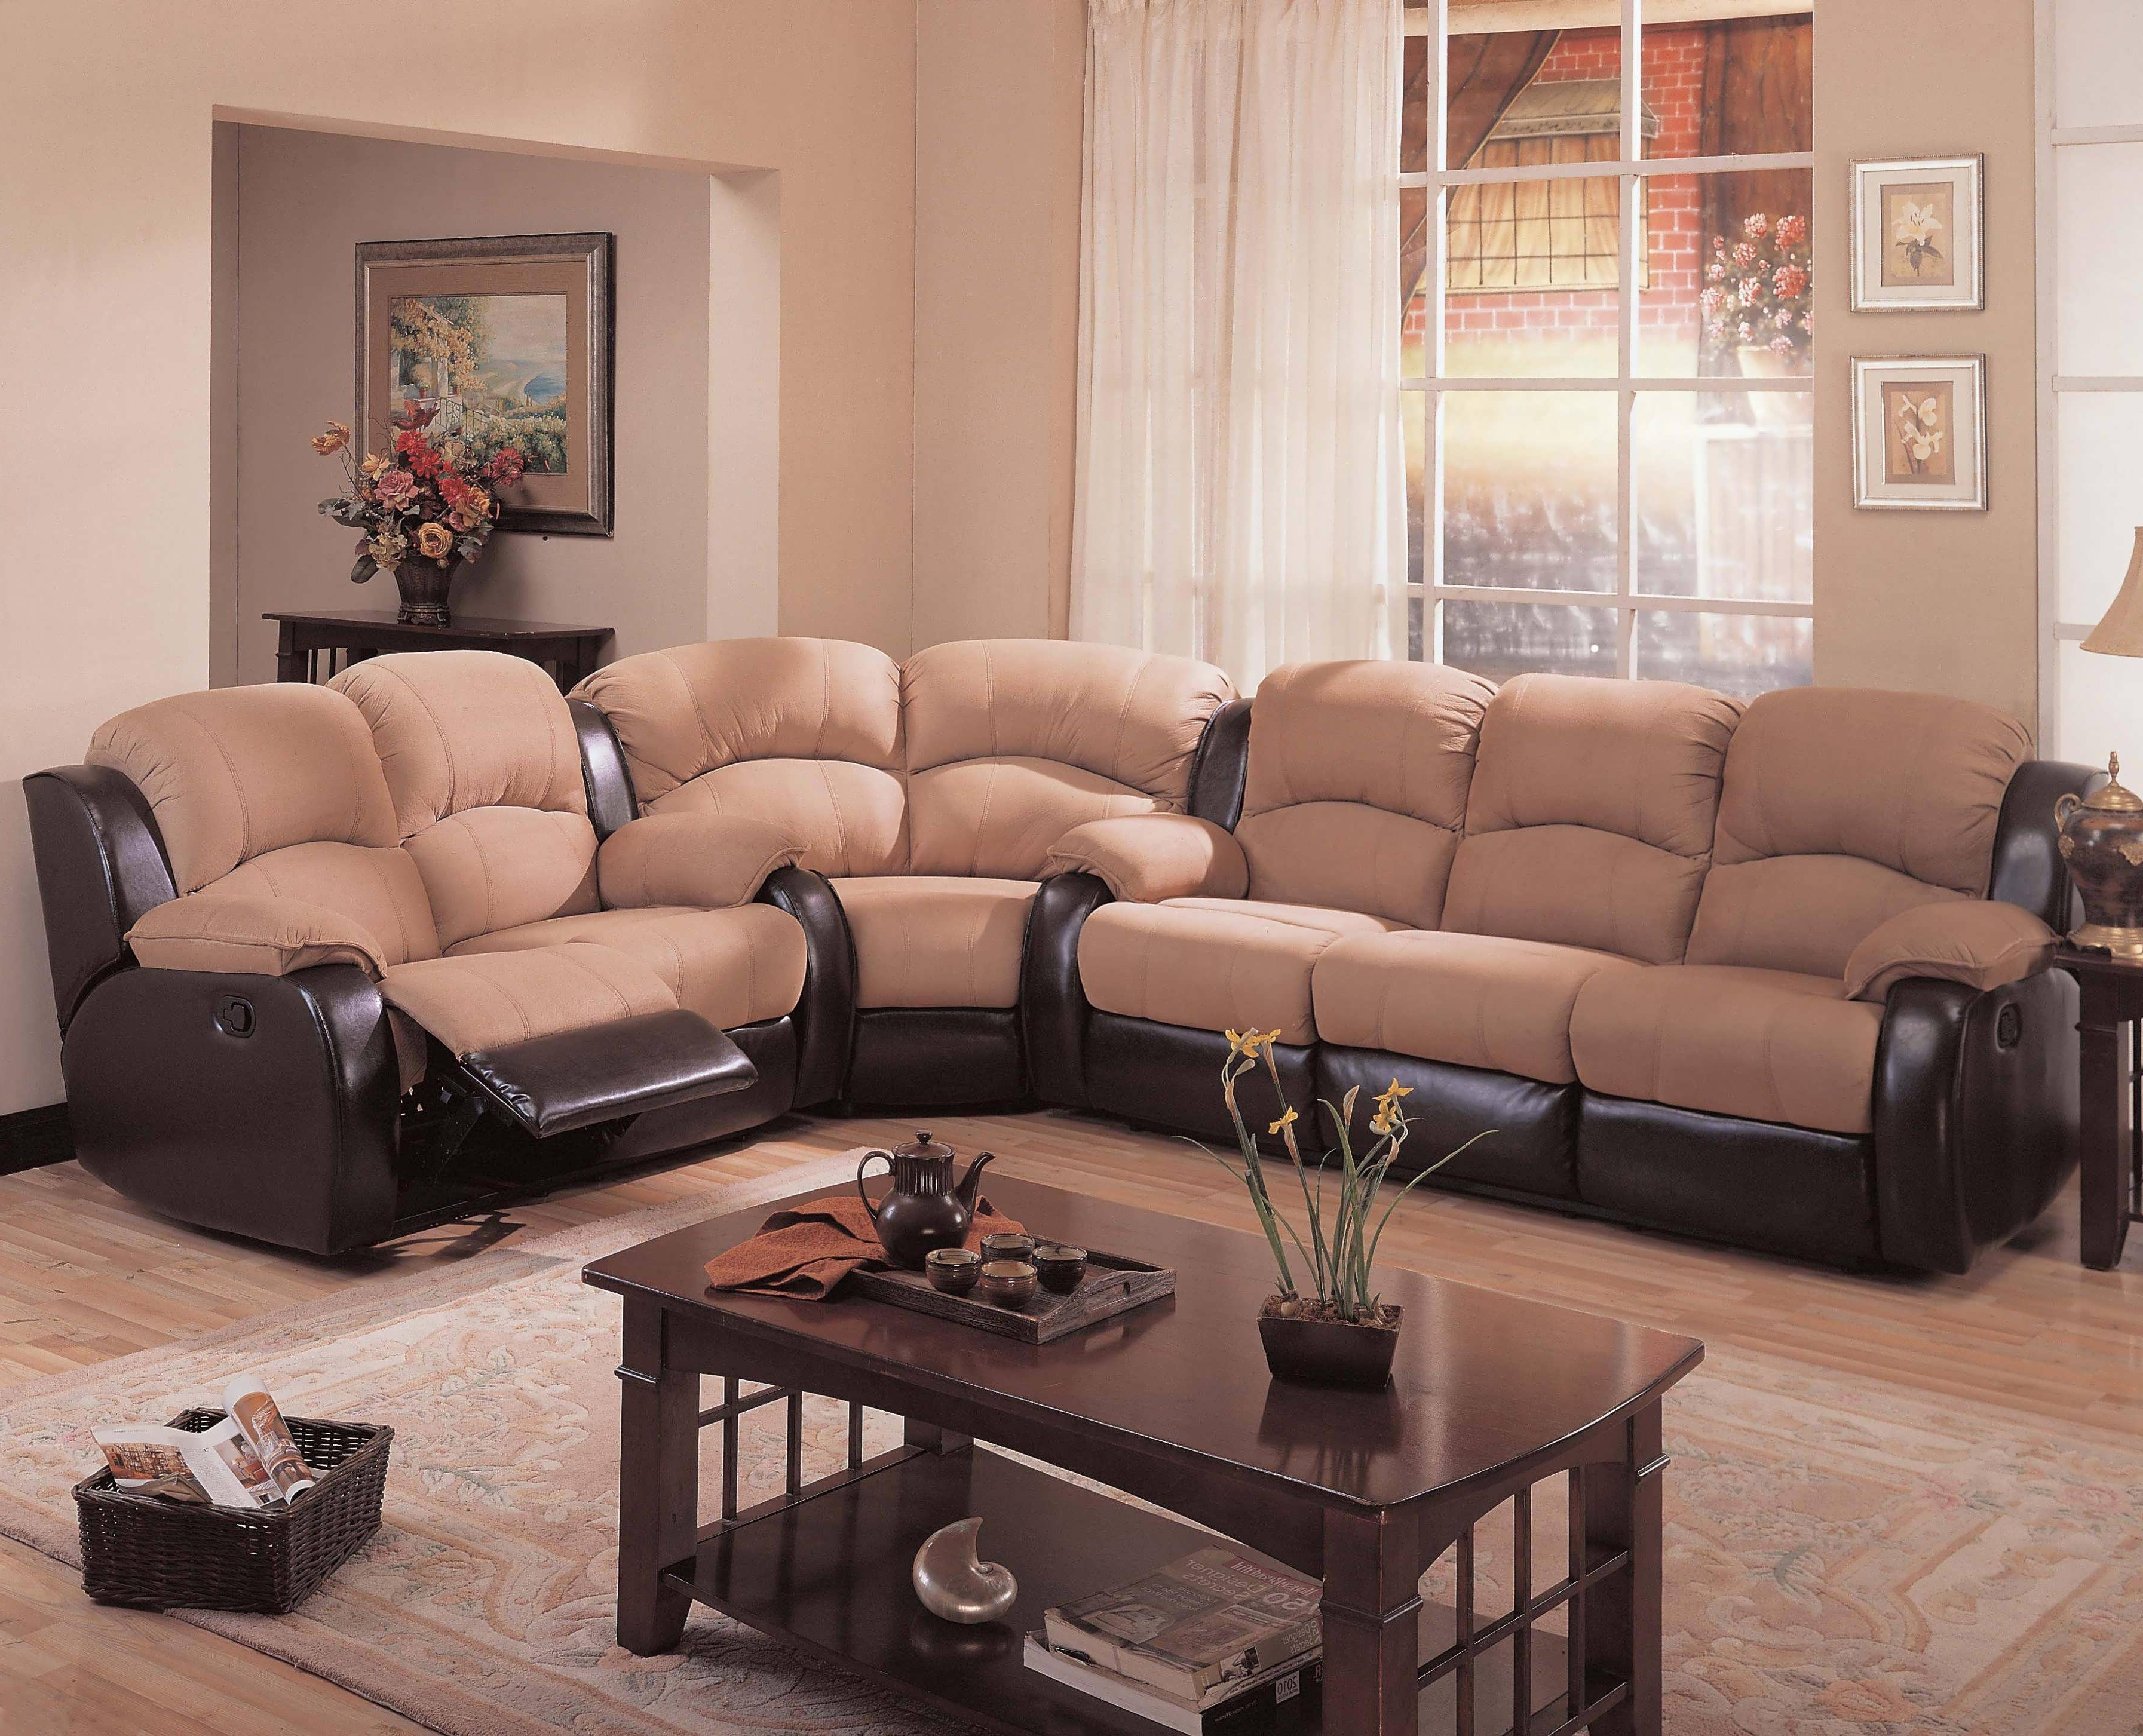 Tan Sectionals With Chaise In Most Up To Date Sofa : Sectionals For Small Spaces Tan Sectional With Chaise Cheap (View 10 of 15)